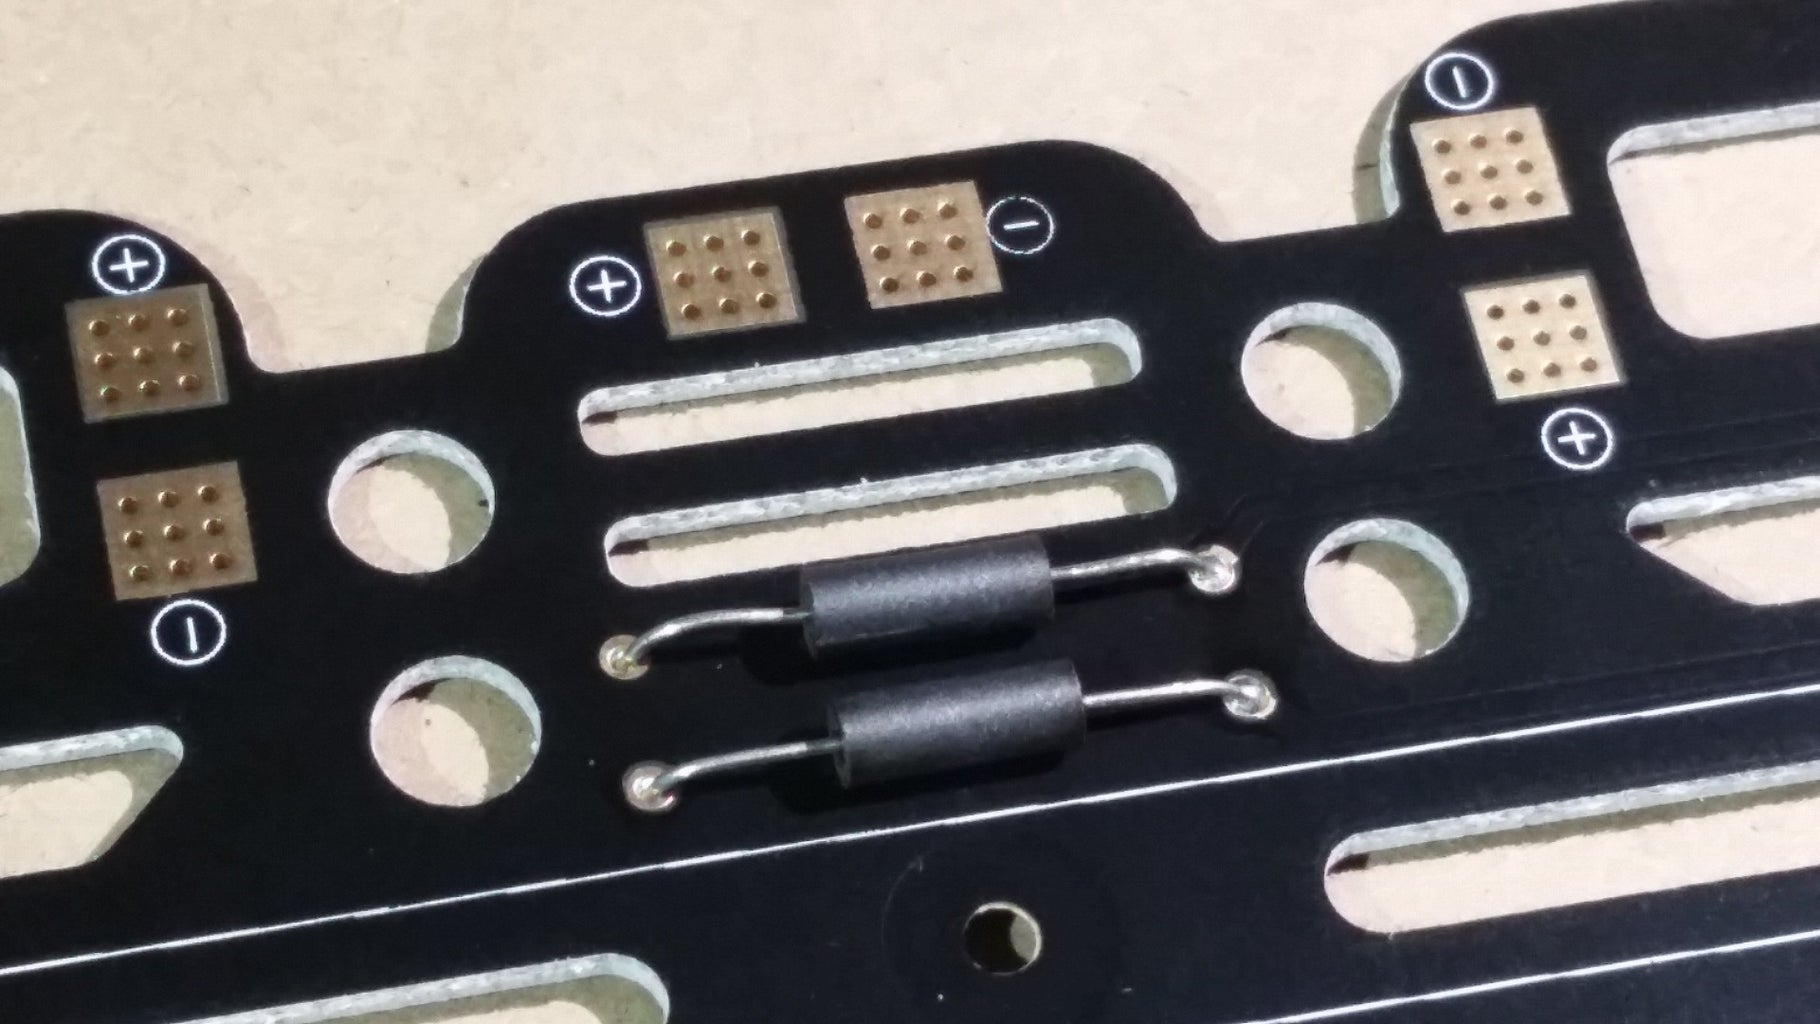 Solder Ferrite Beads to the Power Distribution Board